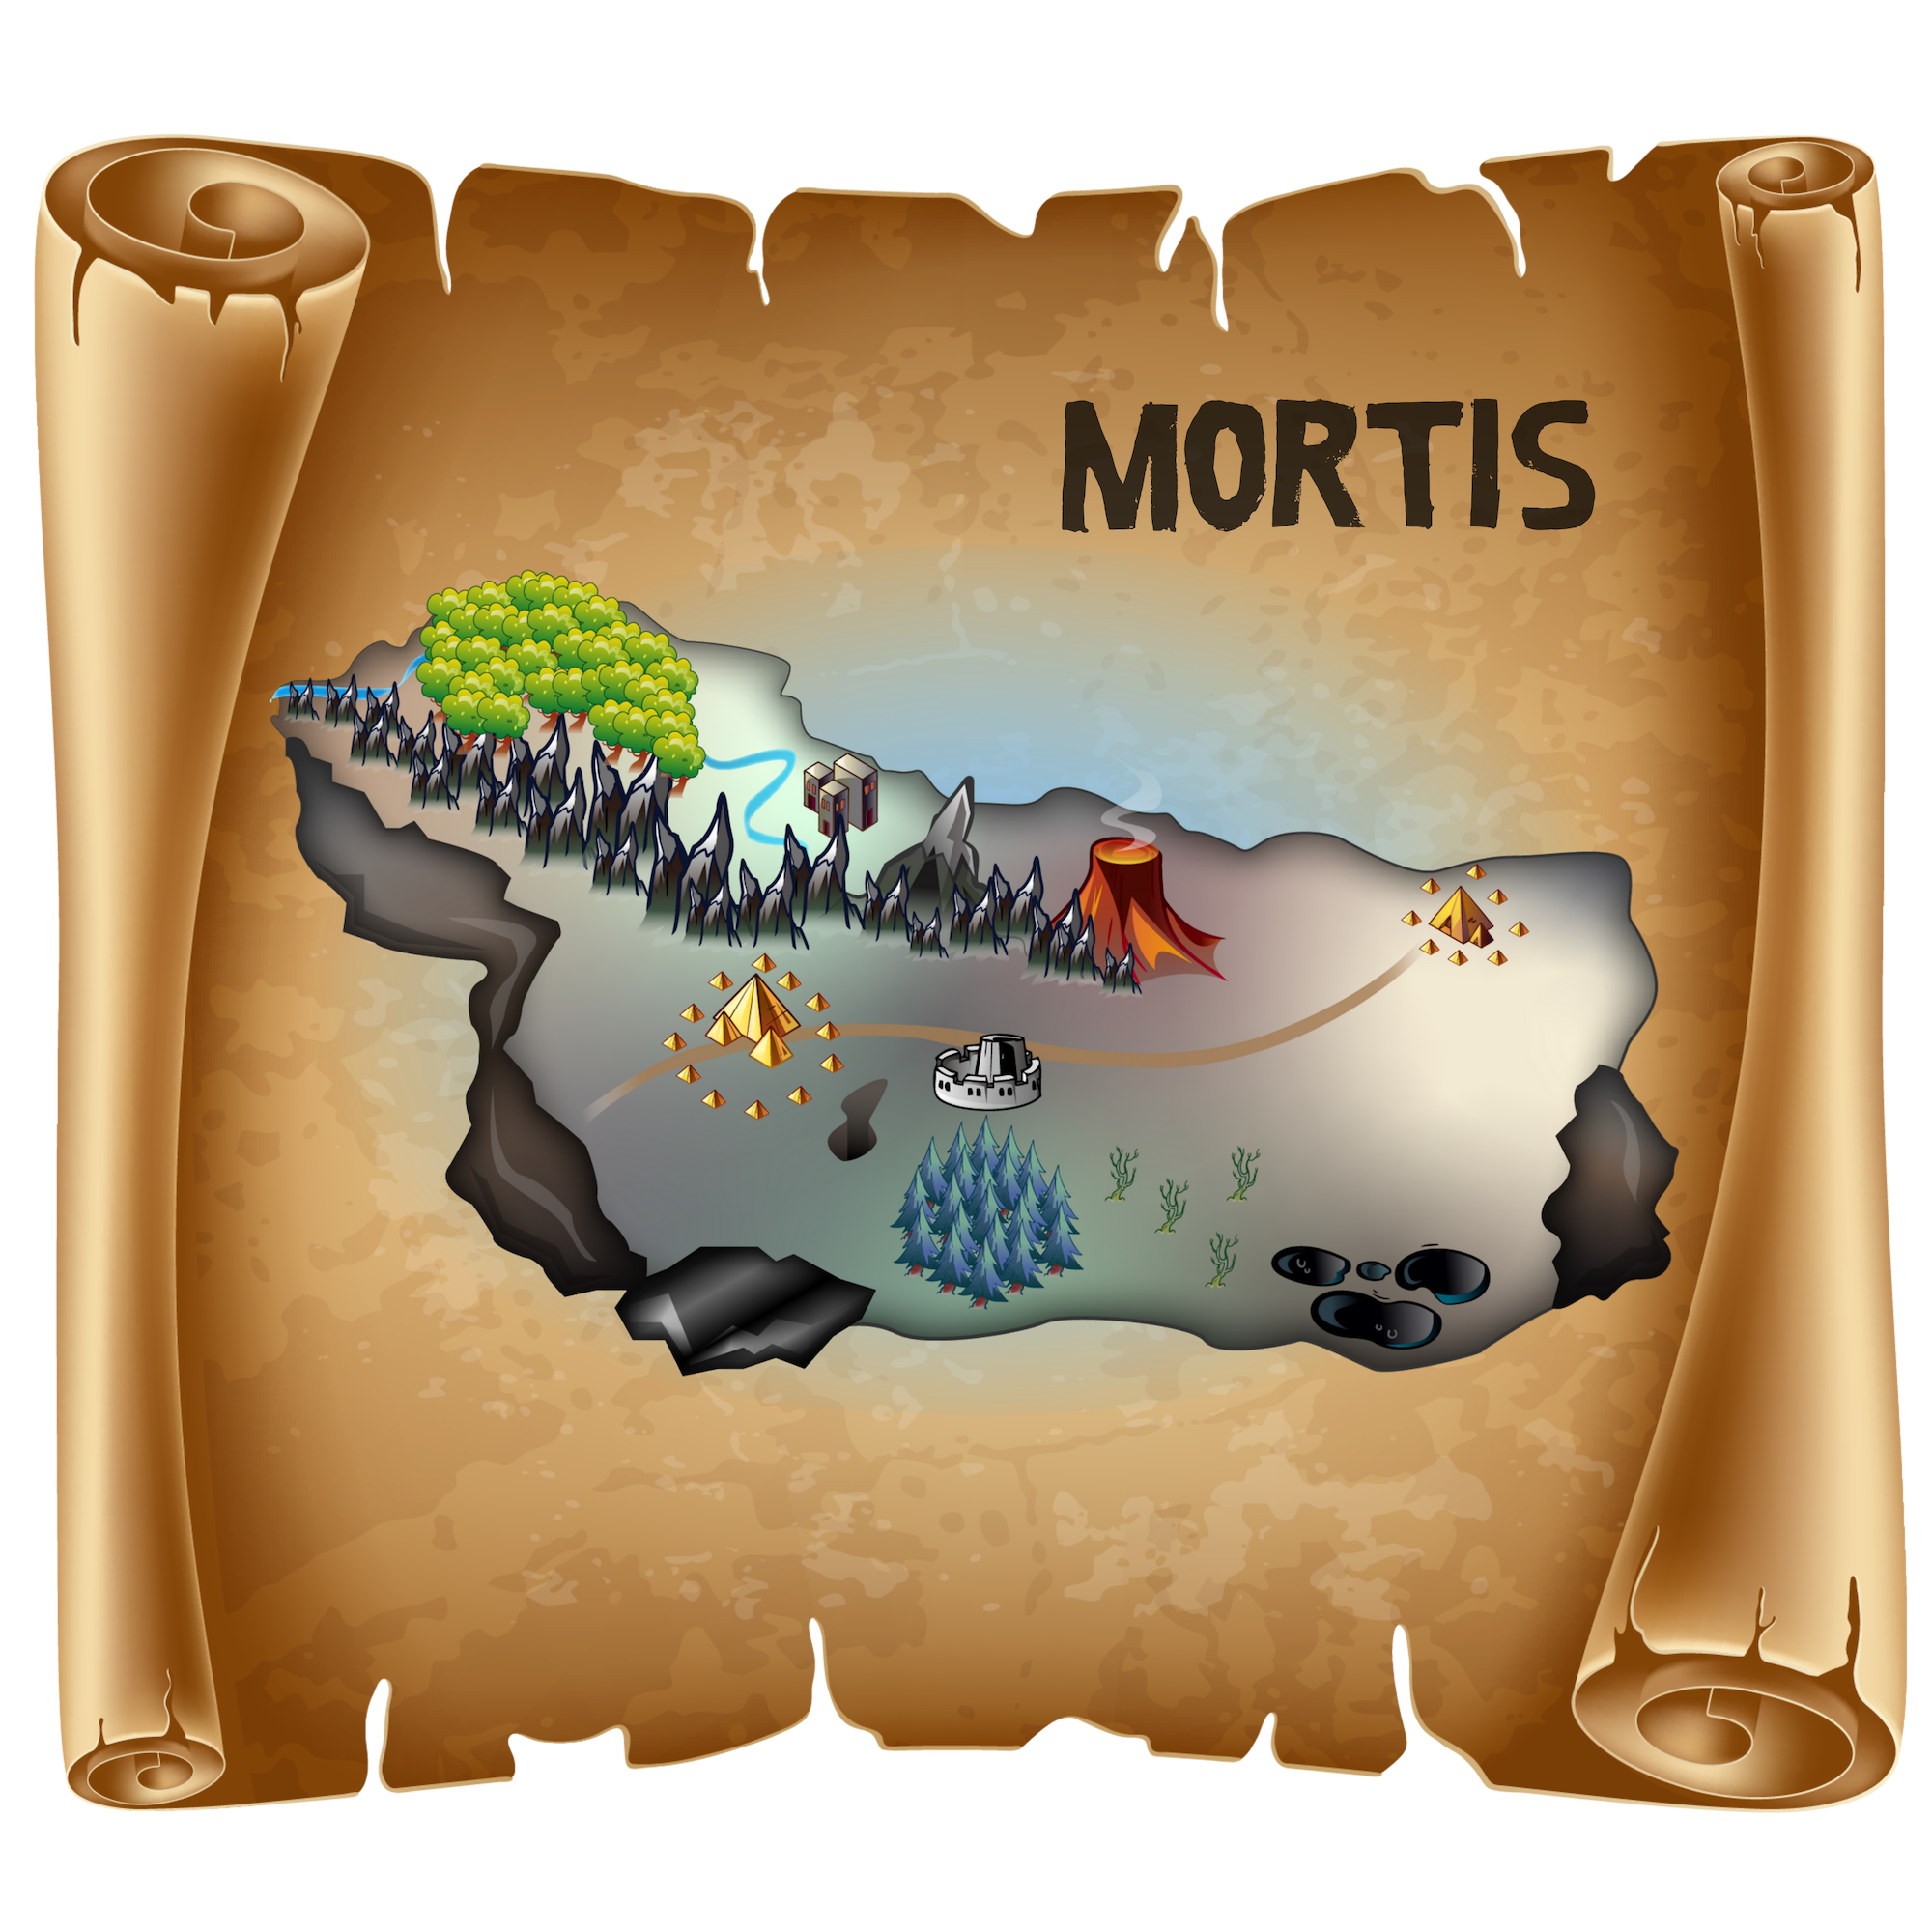 mortis map no words.png